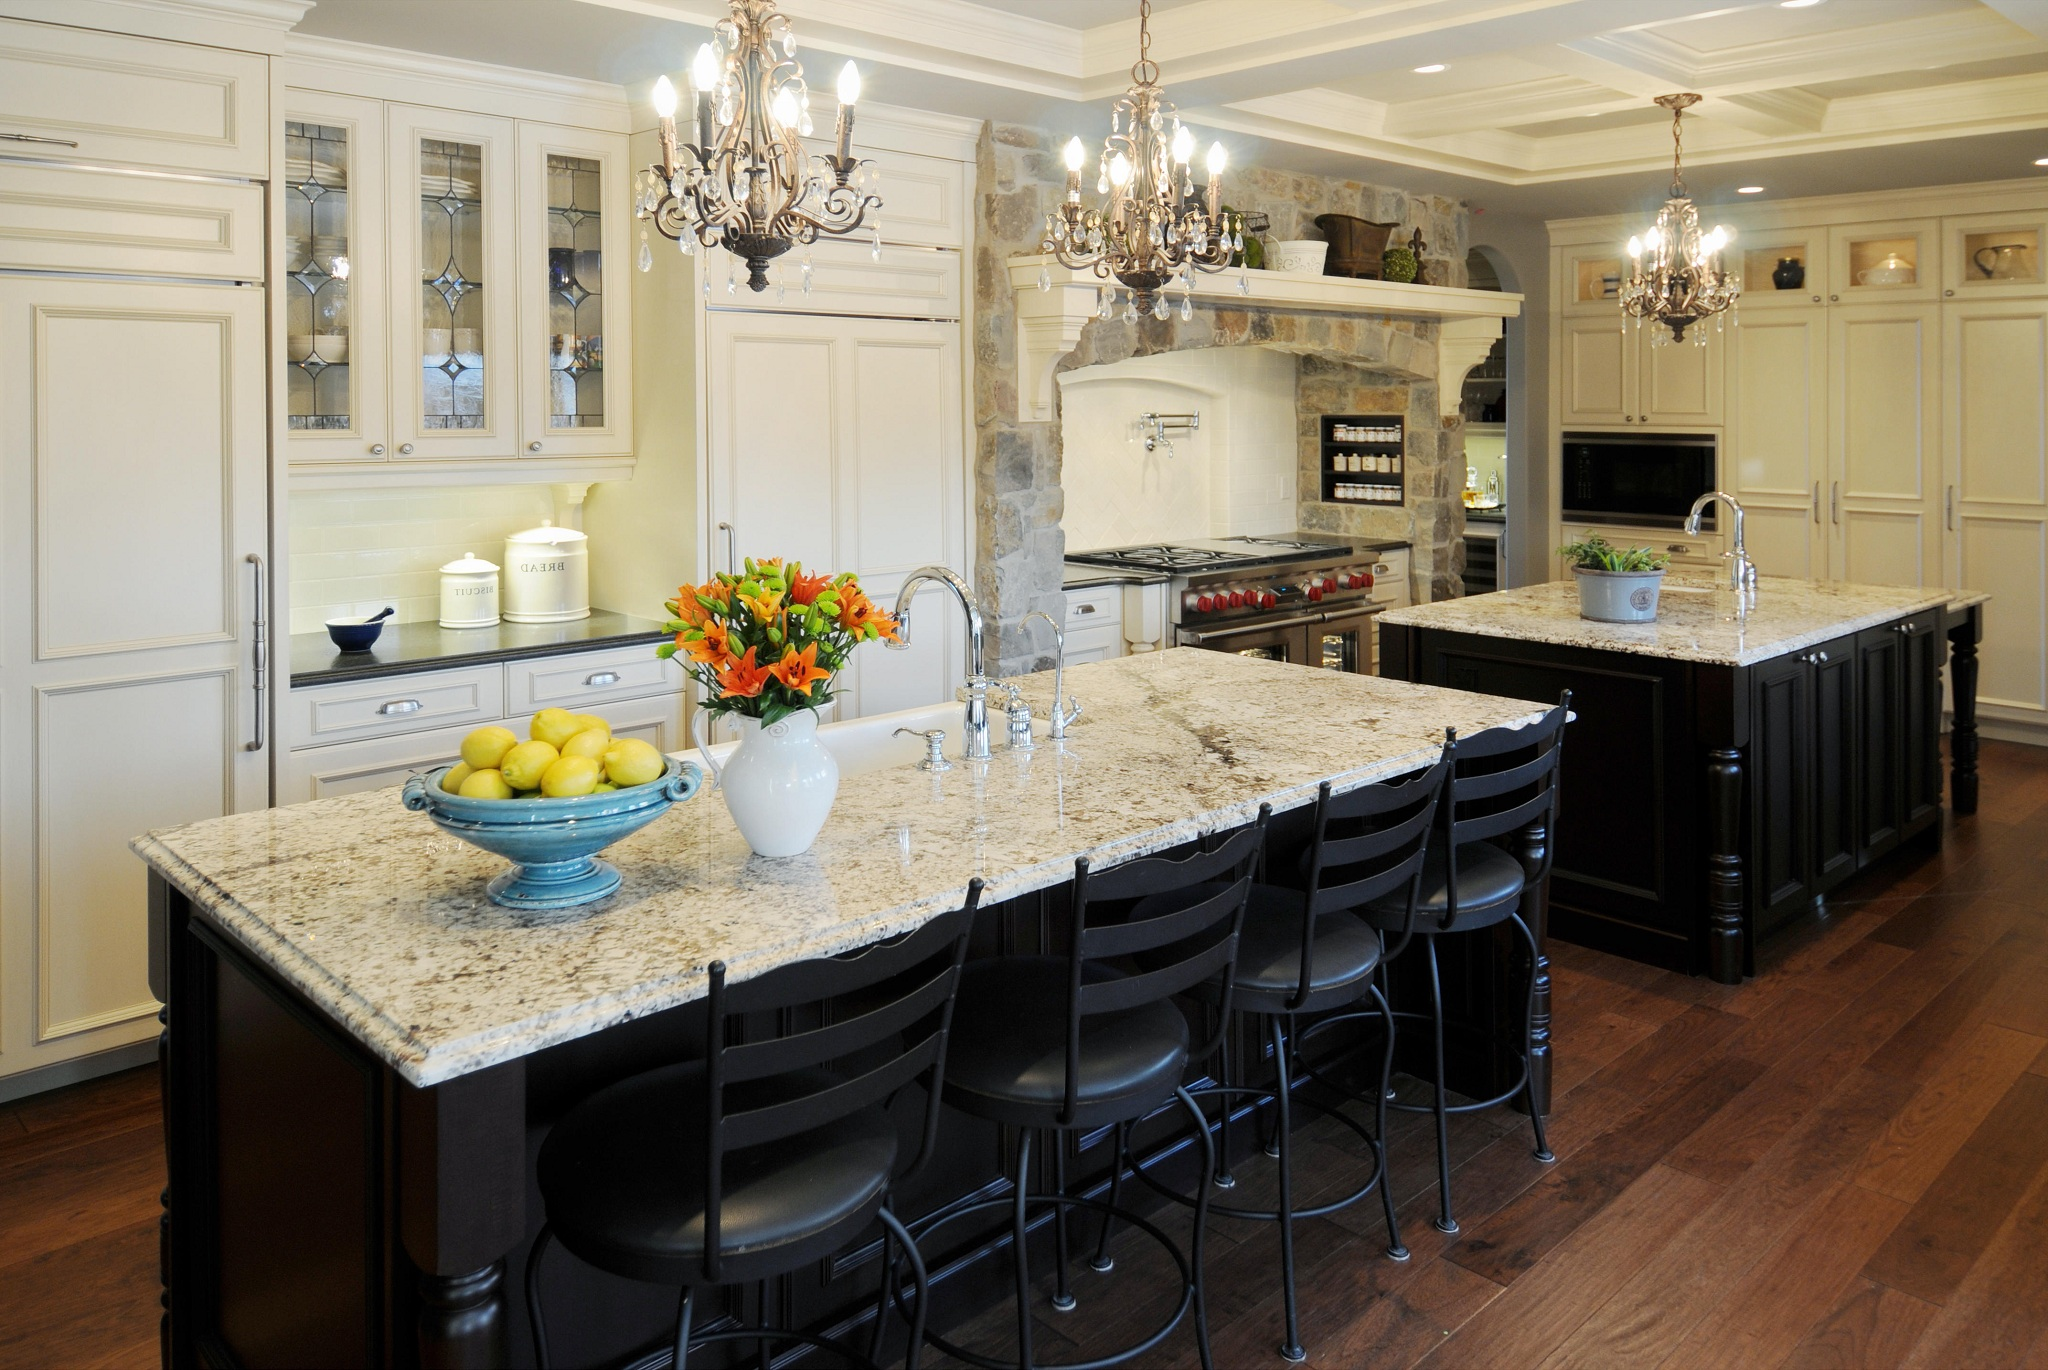 Classic Kitchen Pendant Lighting (Image 4 of 10)